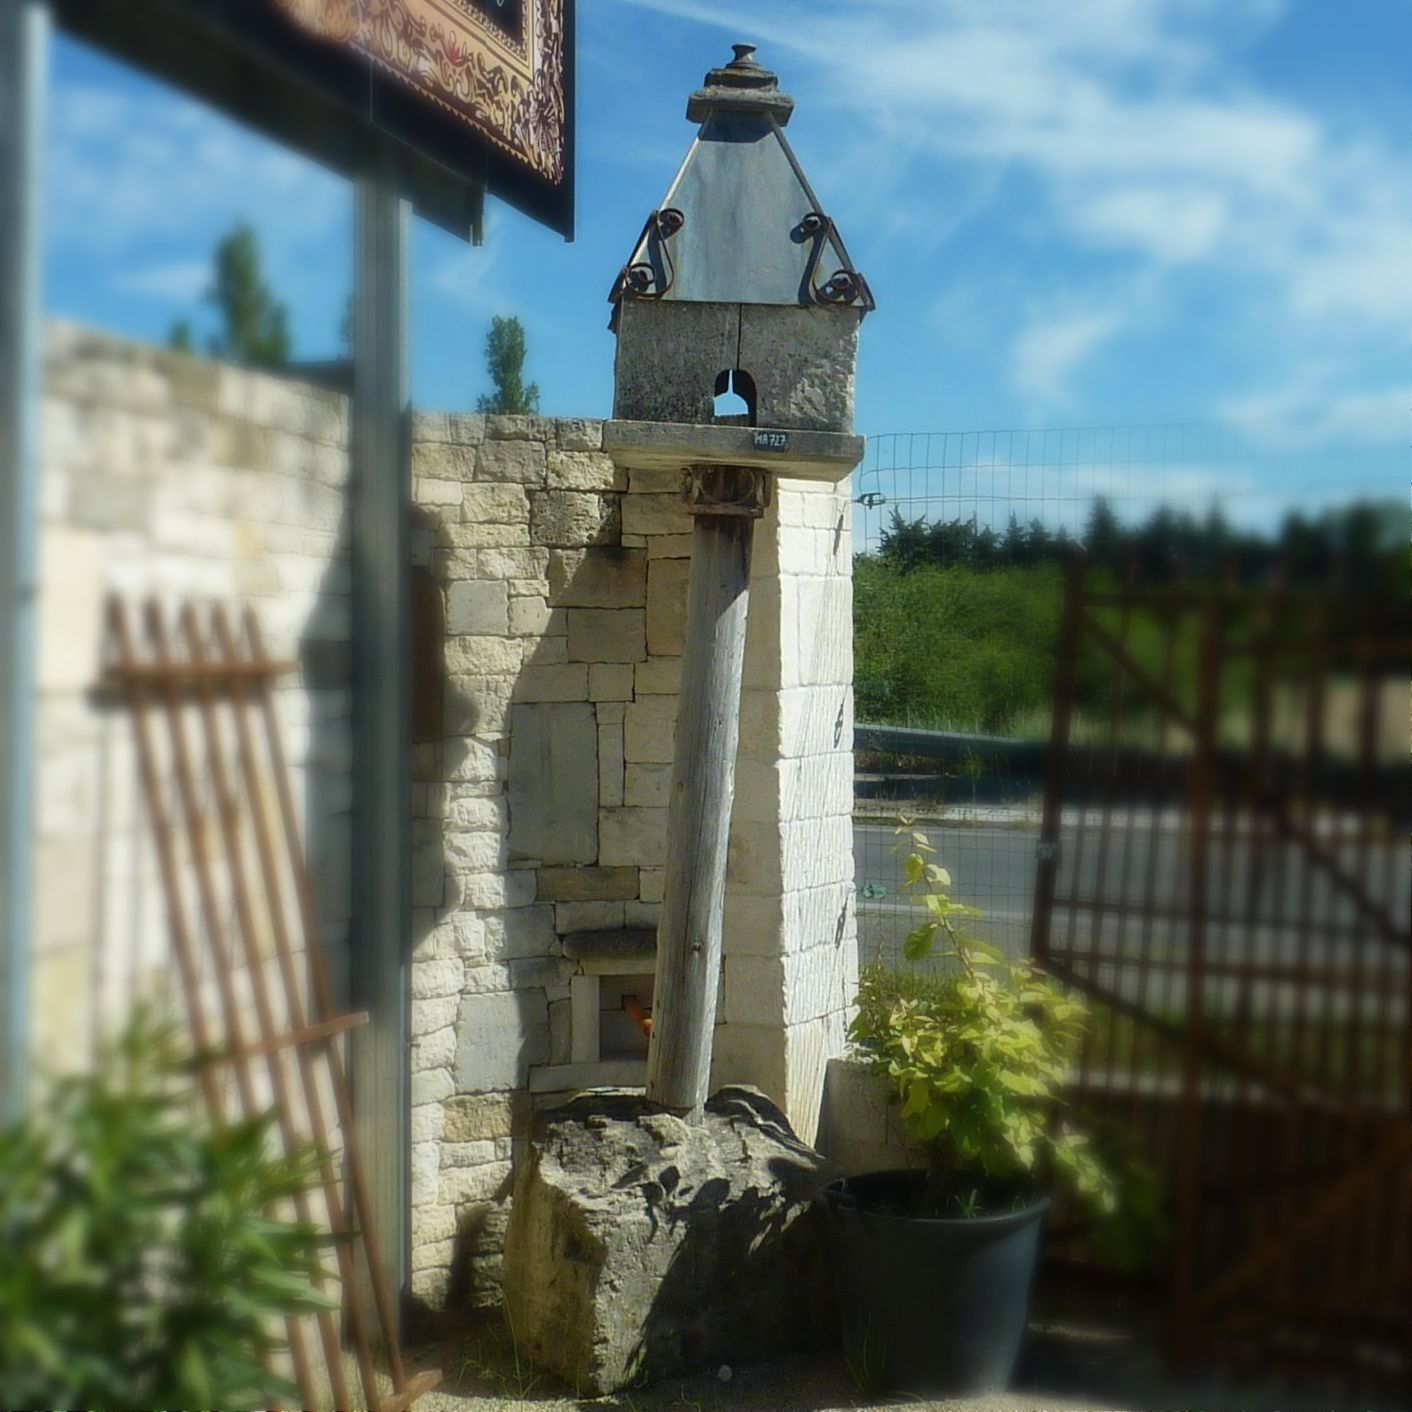 Dovecote made of old materials.